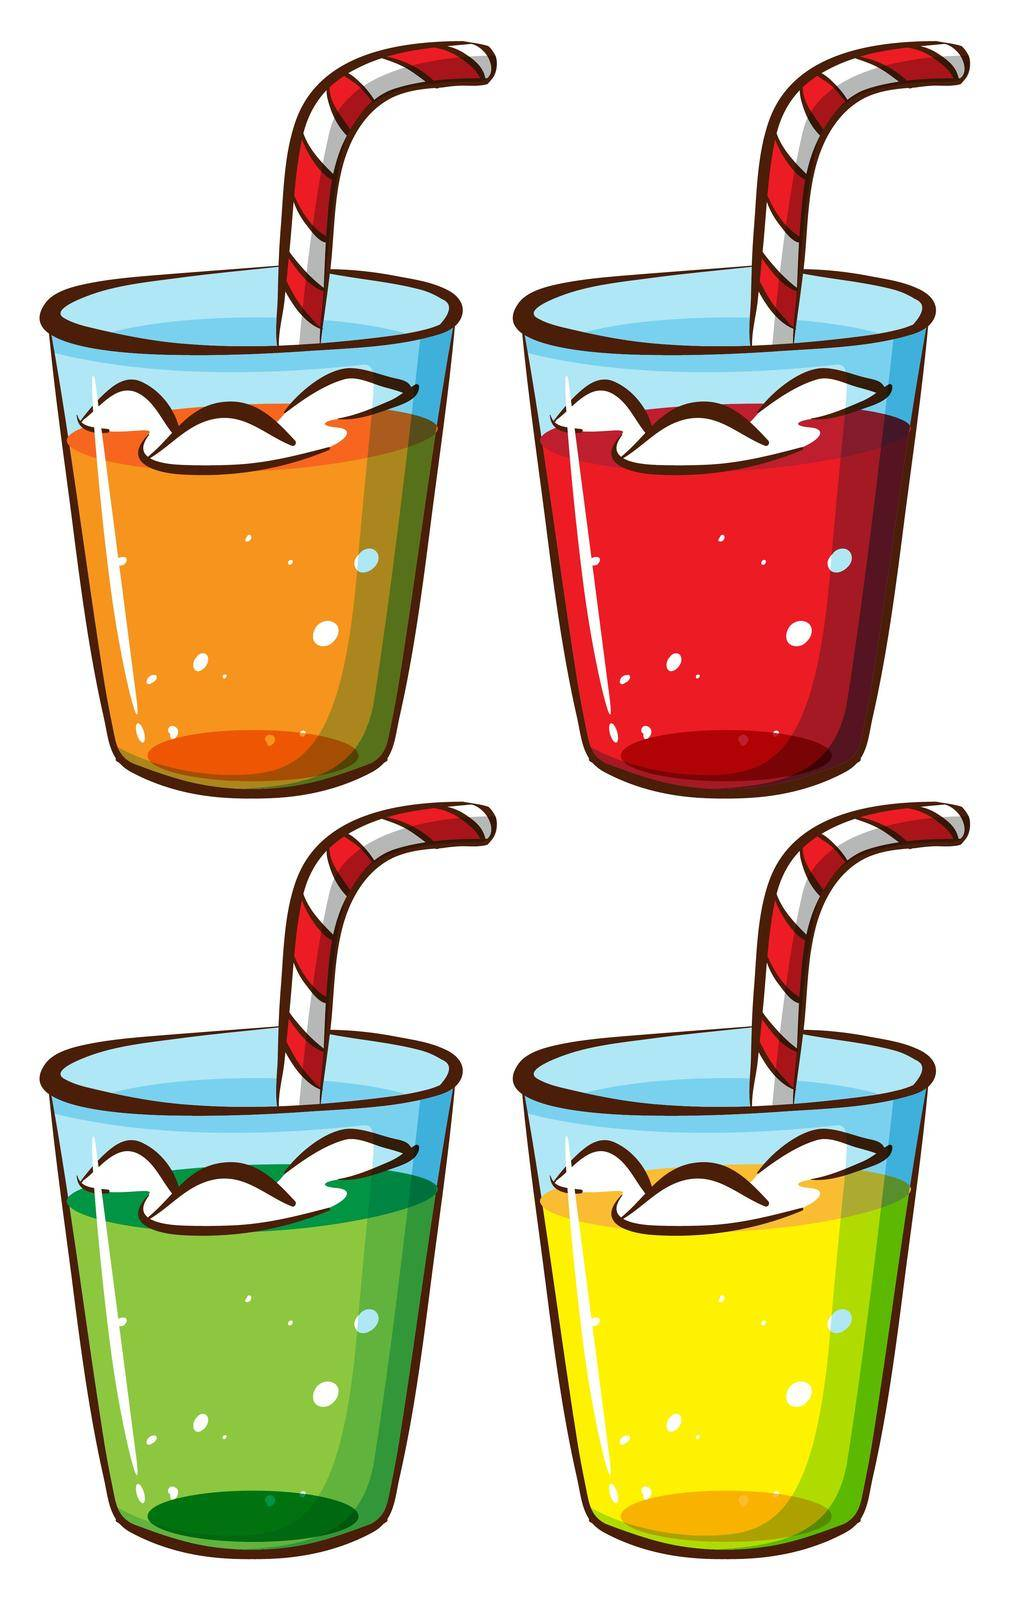 A sketch of the glasses with juice on a white background